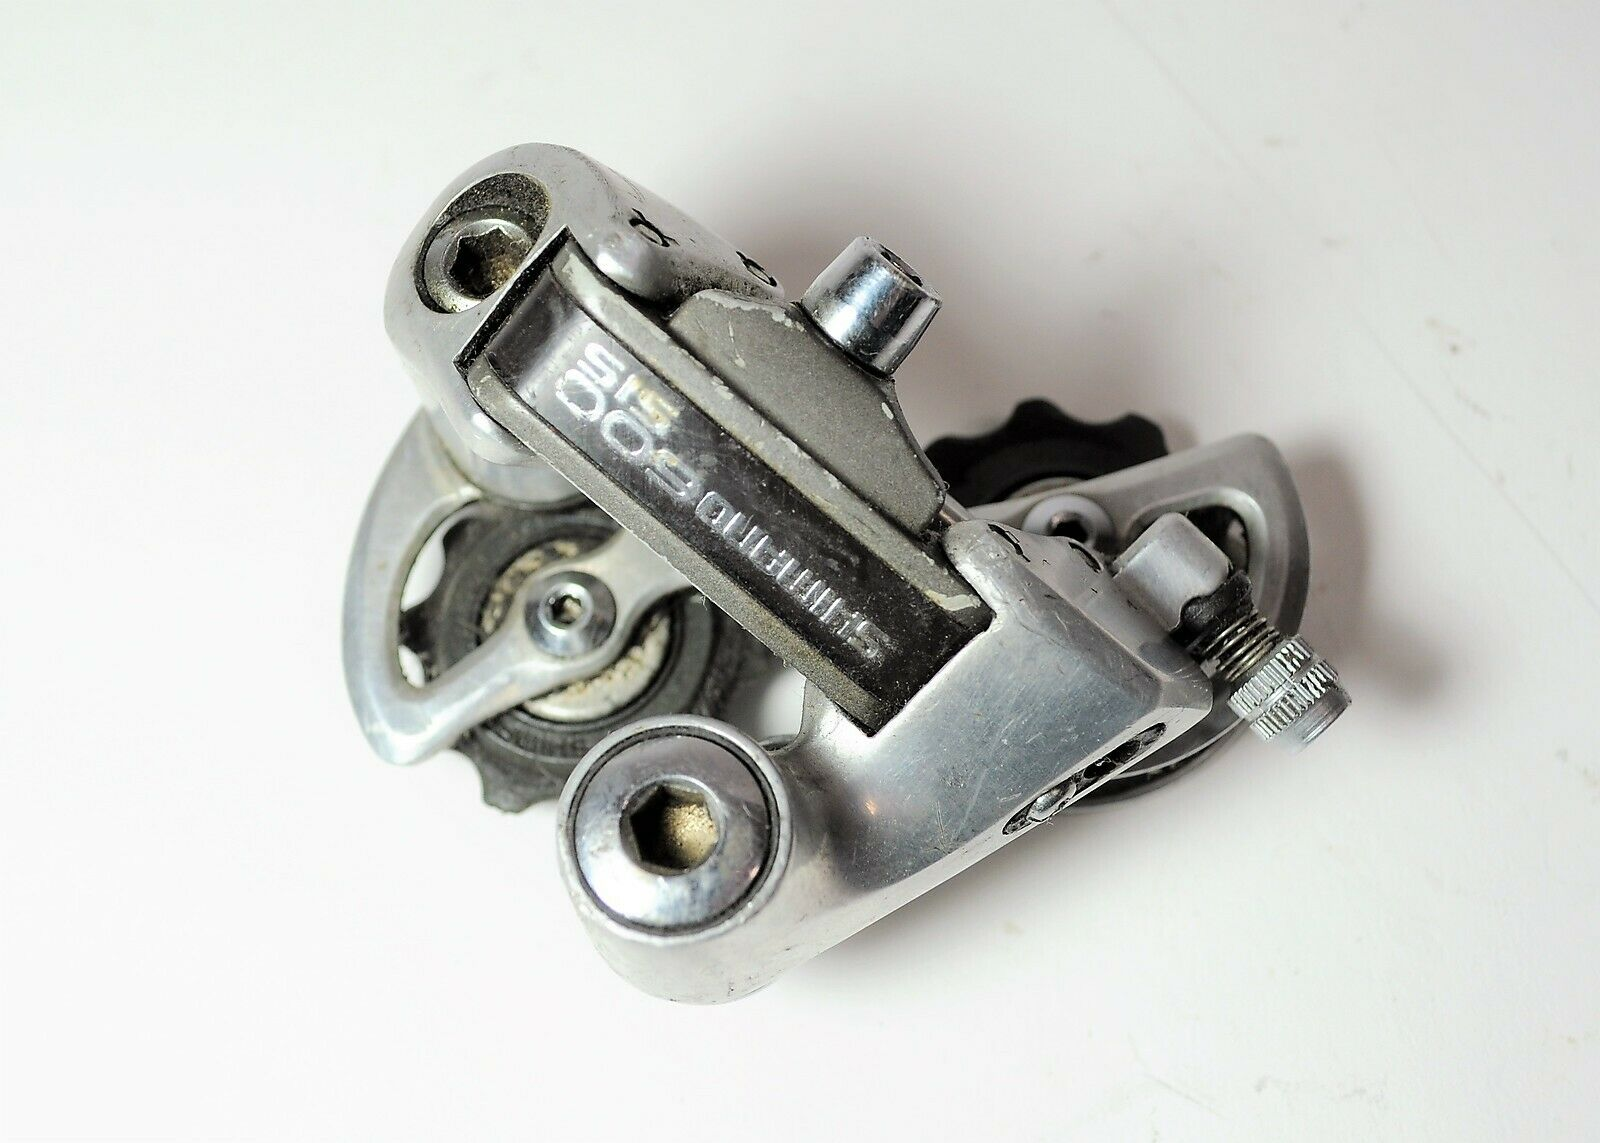 SHIMANO 600EX FIRST GEN SIS BICYCLE 6 7 SP SS SHORT CAGE REAR DERAILLEUR RD-6208